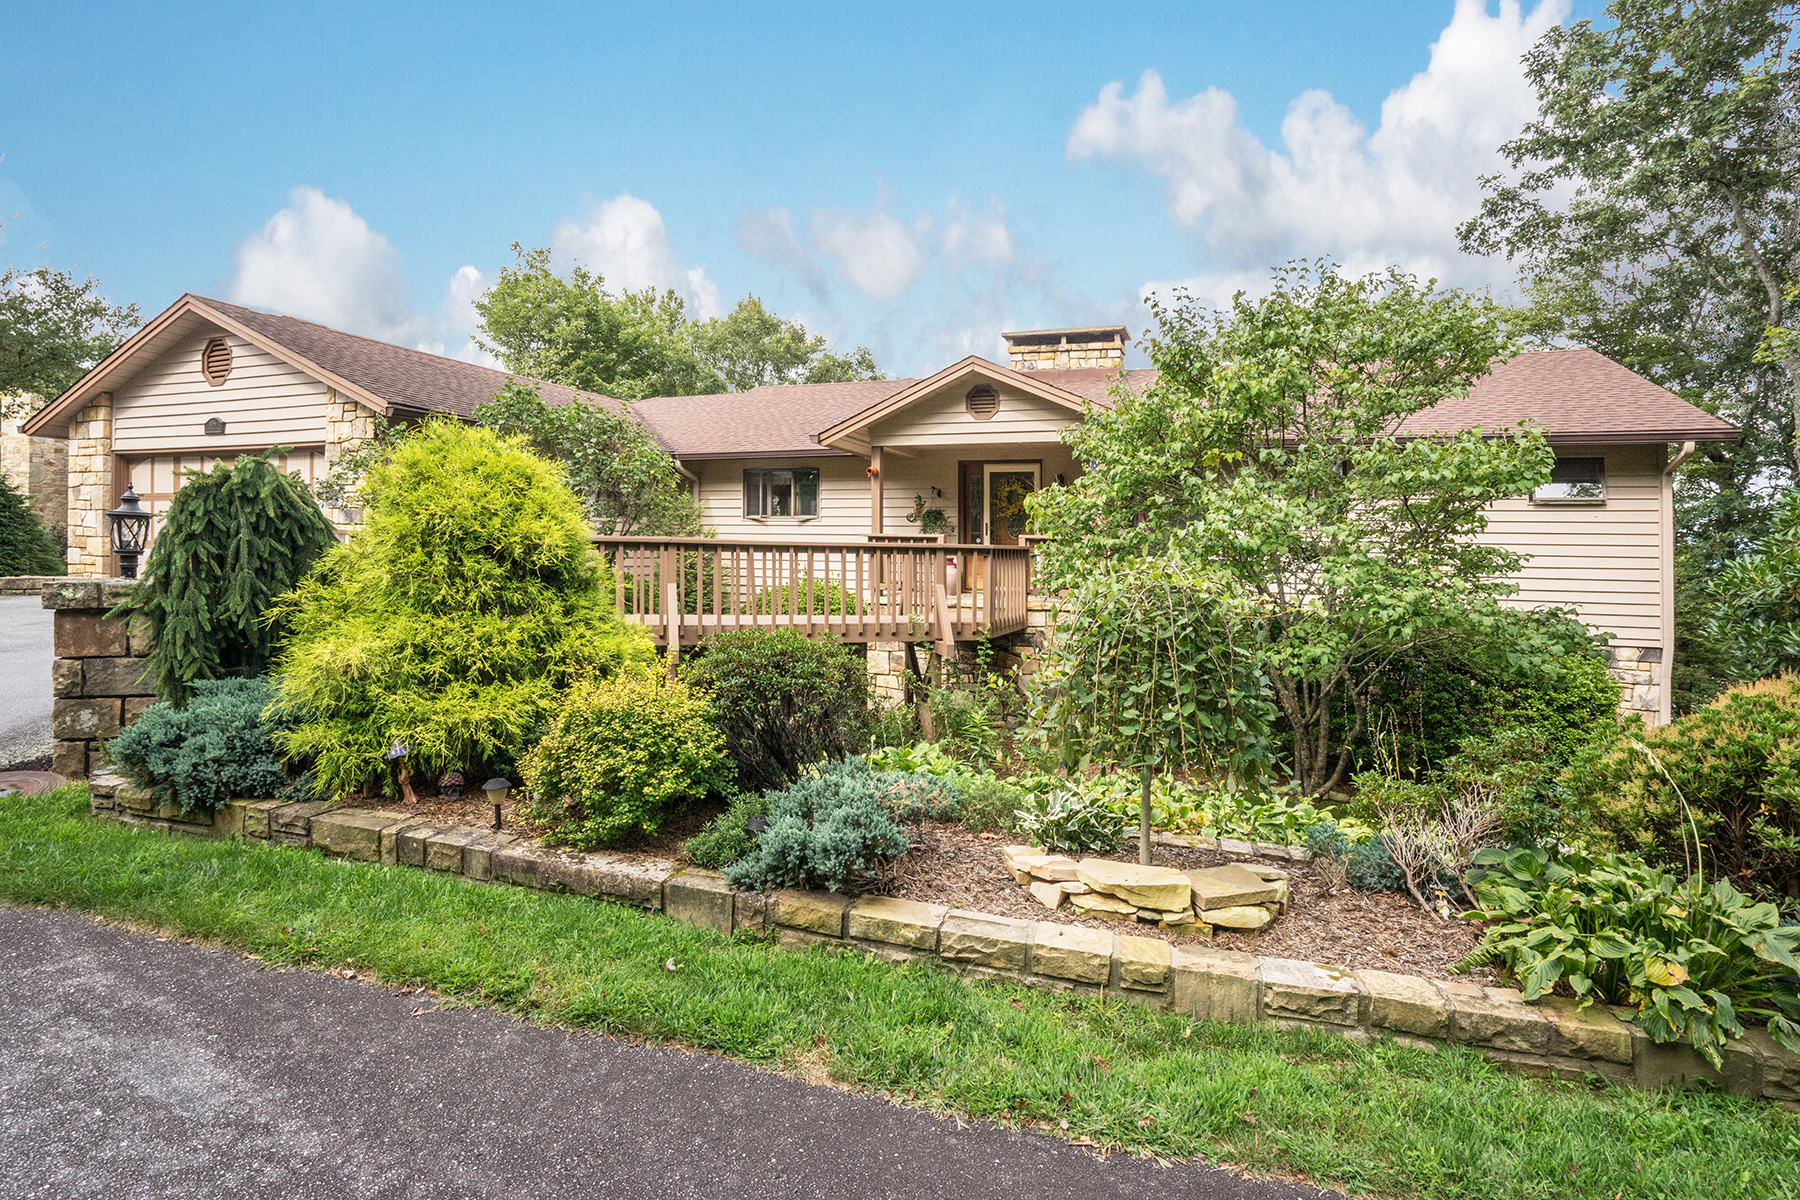 Single Family Home for Sale at Blowing Rock 156 Misty Ridge Ln, Blowing Rock, North Carolina, 28605 United States